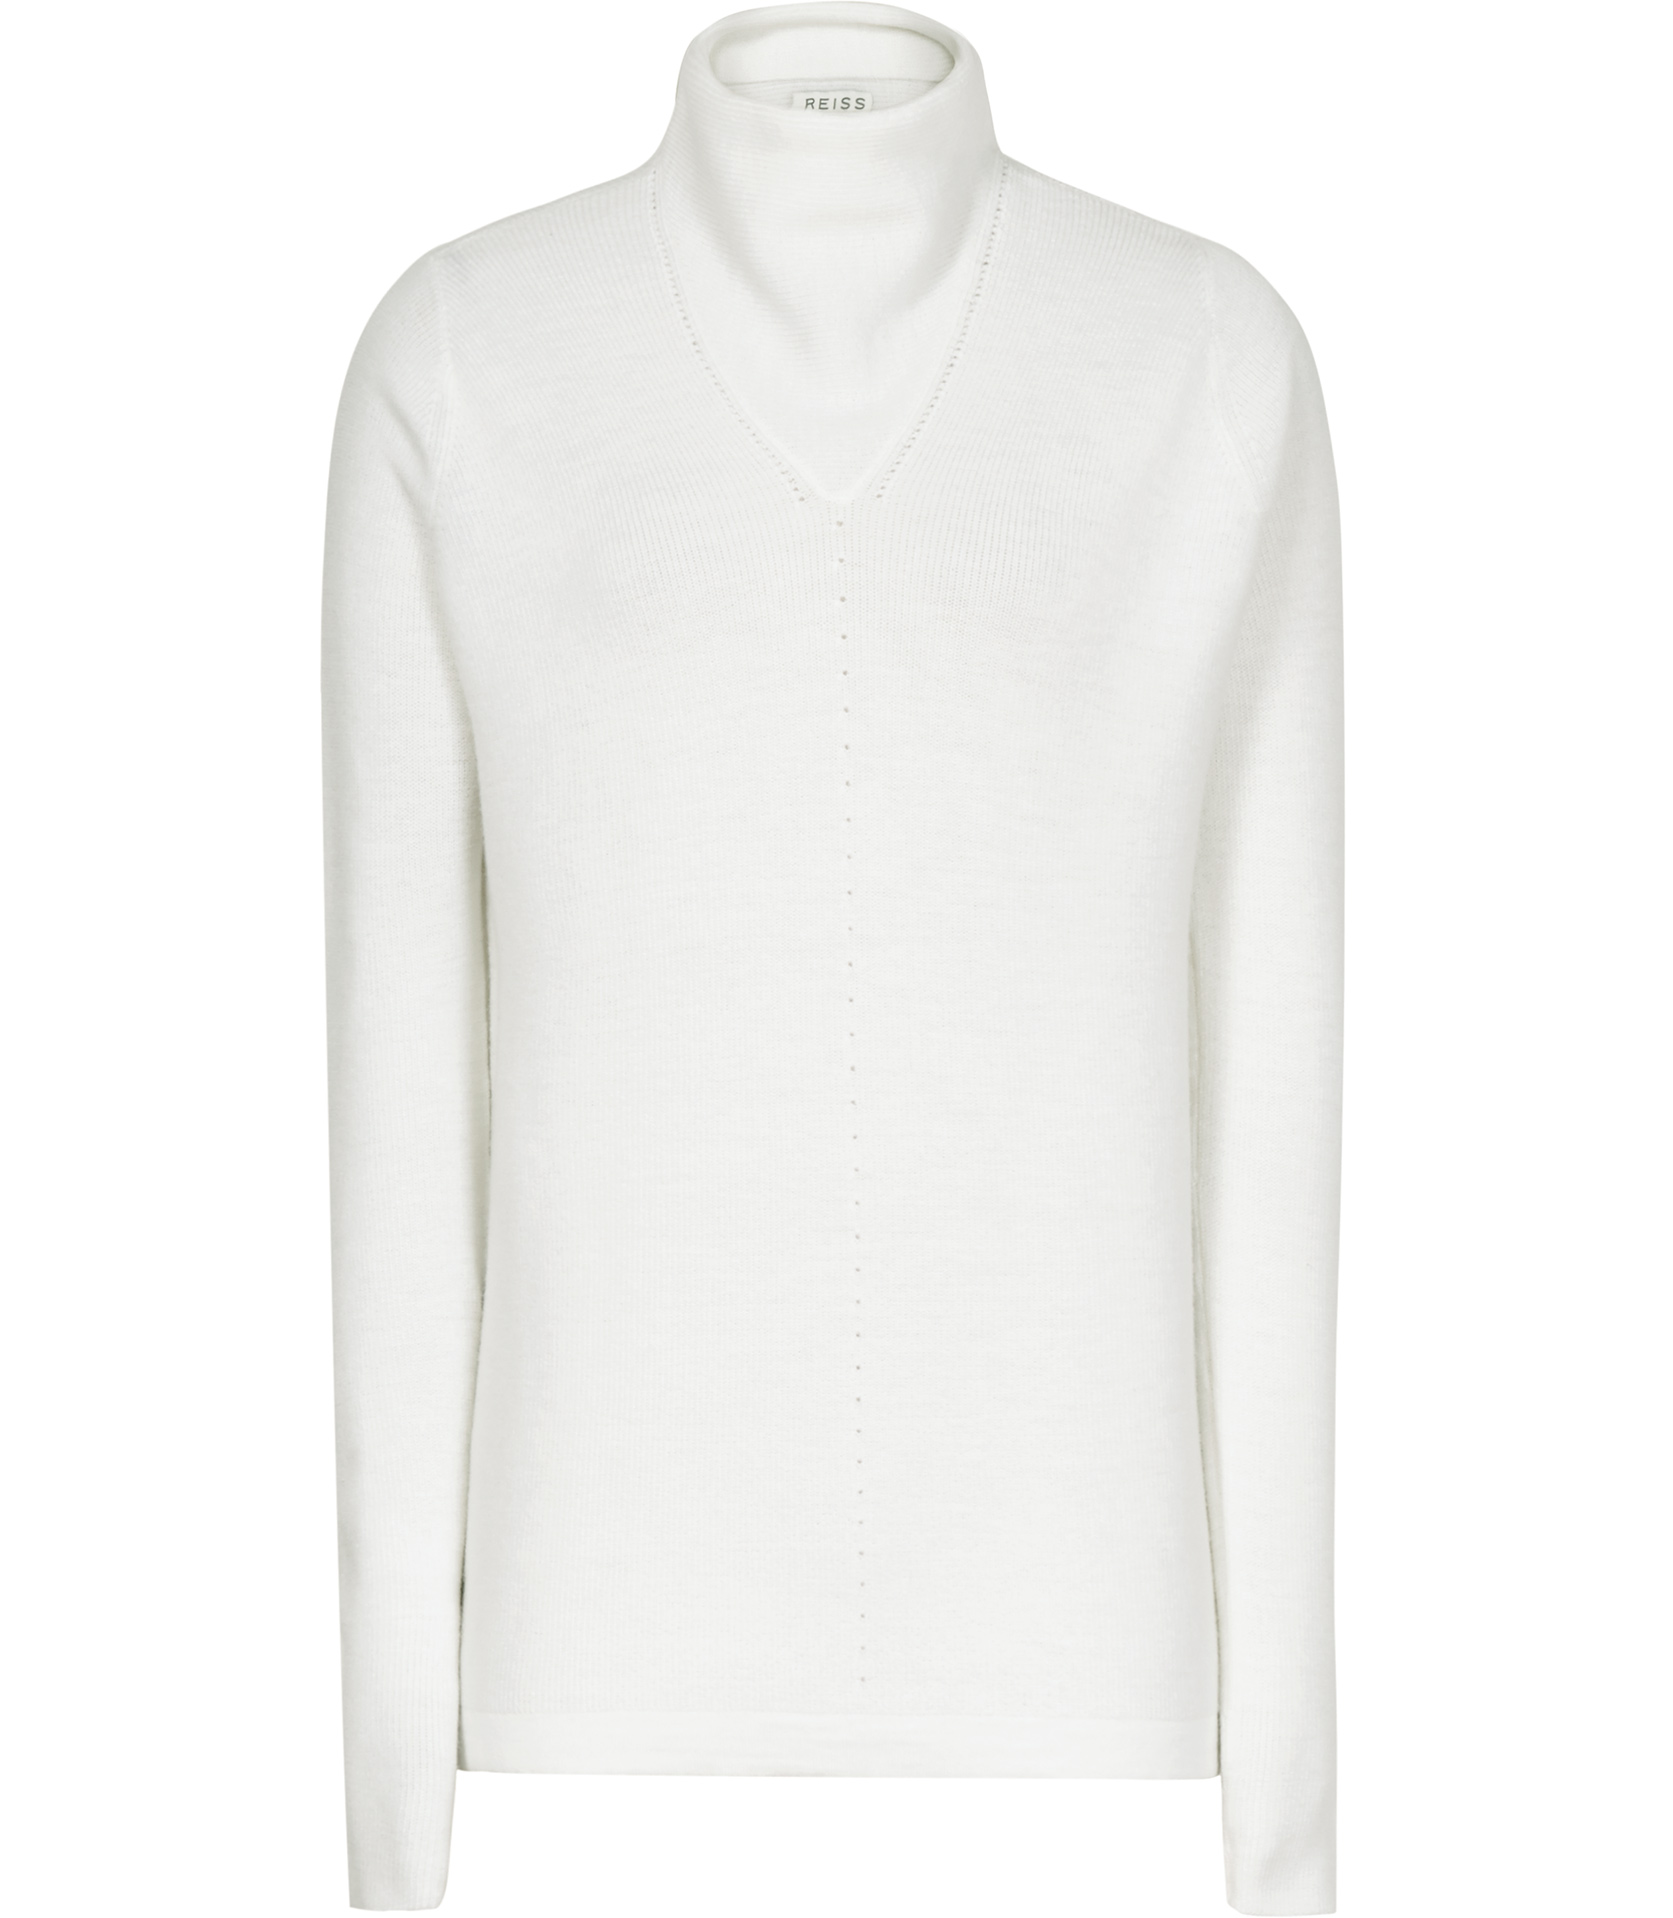 Liberty Light Ivory Lightweight Wool Jumper - REISS